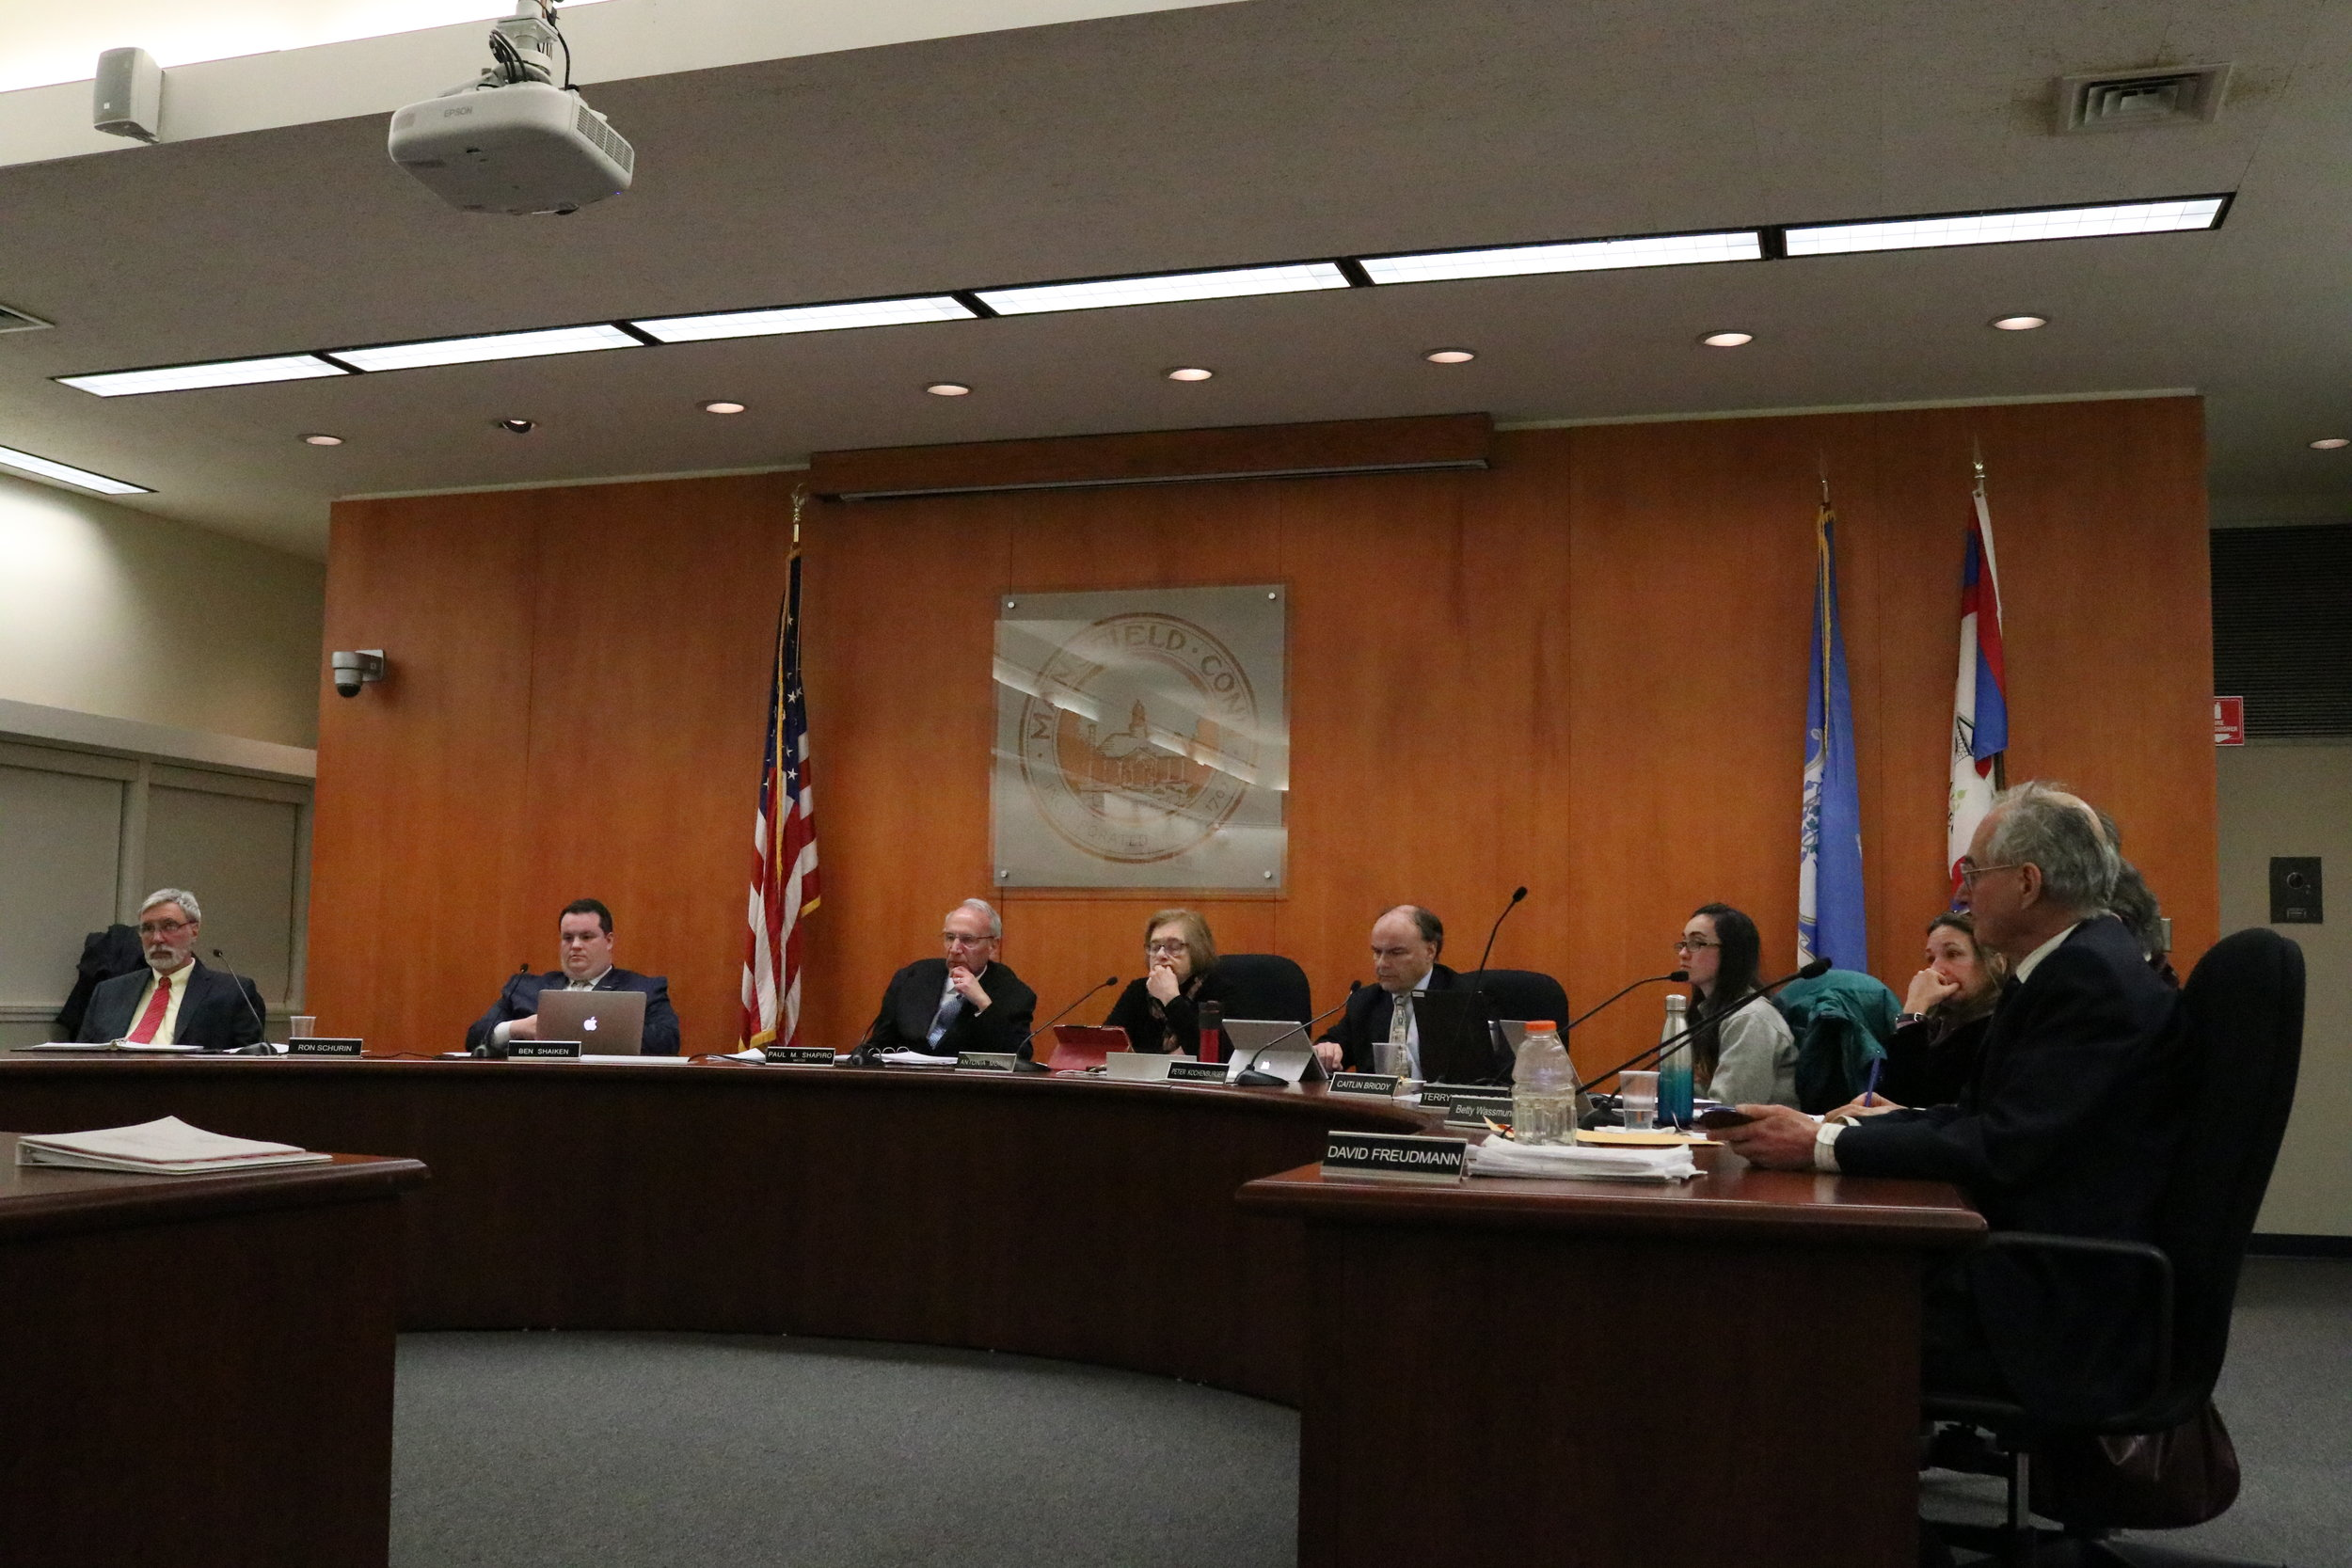 The Mansfield Town Council votes to adopt the BYOB Ordinance banning plastic checkout bags in Mansfield. The ban was passed 8 to 1. (Maggie Chafouleas/The Daily Campus)